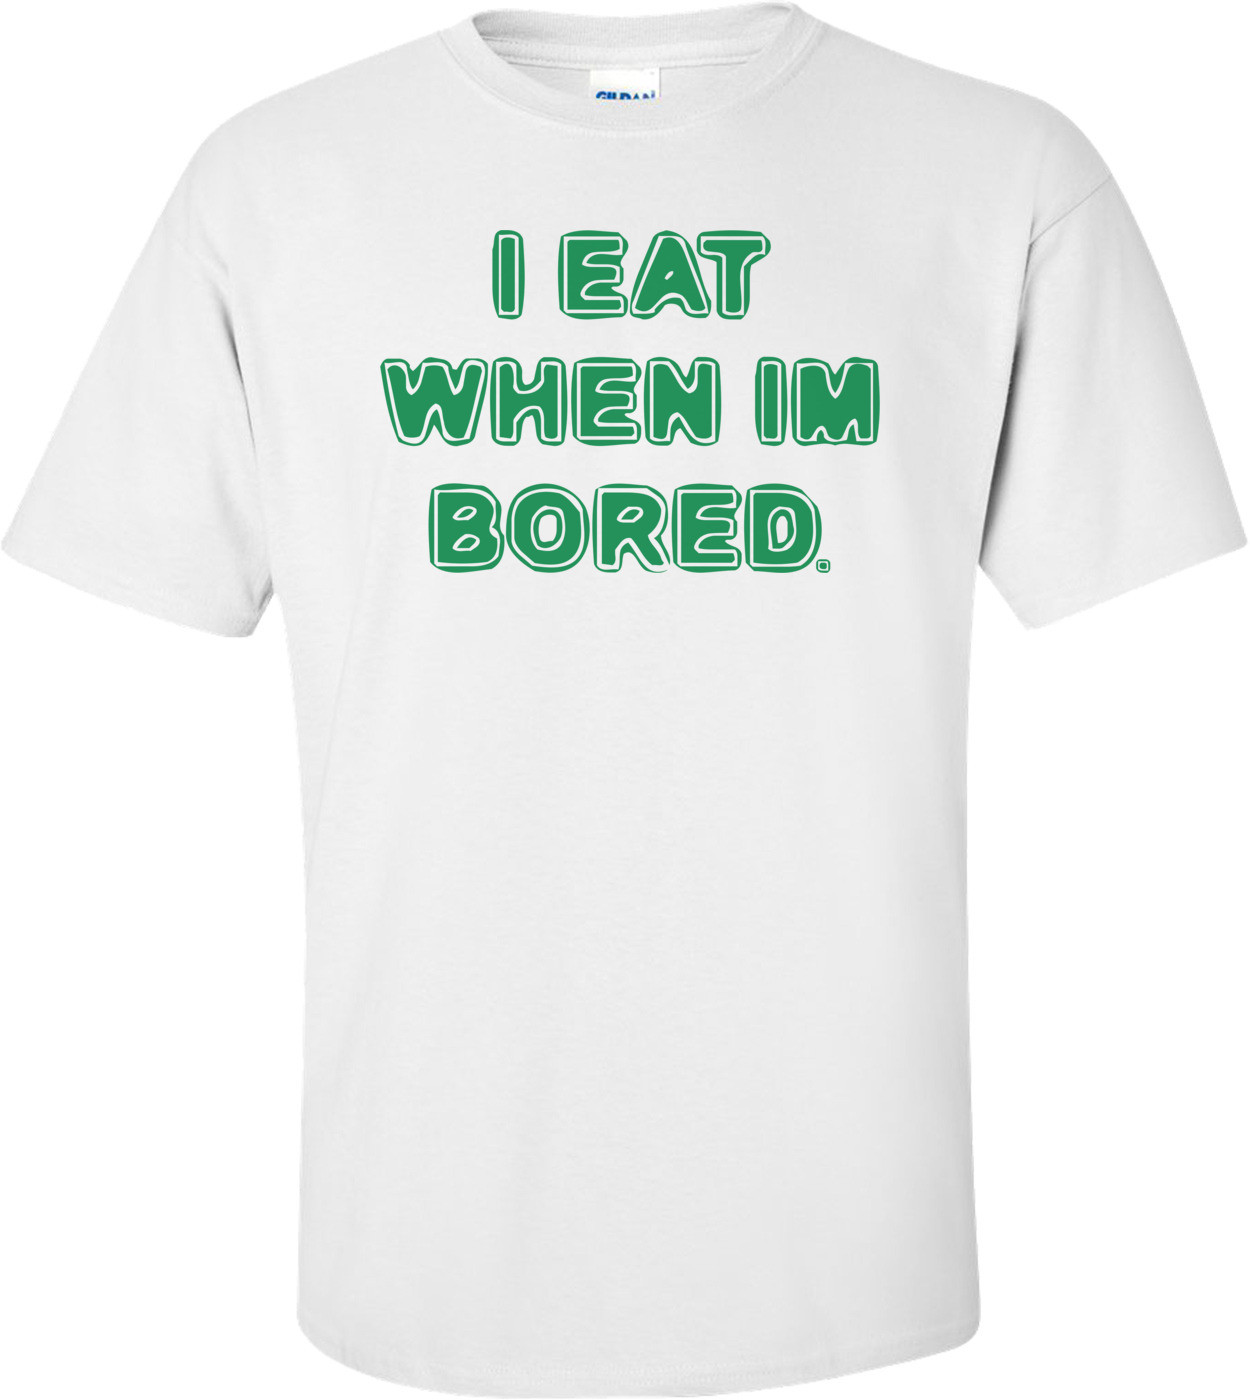 I EAT WHEN IM BORED. Shirt